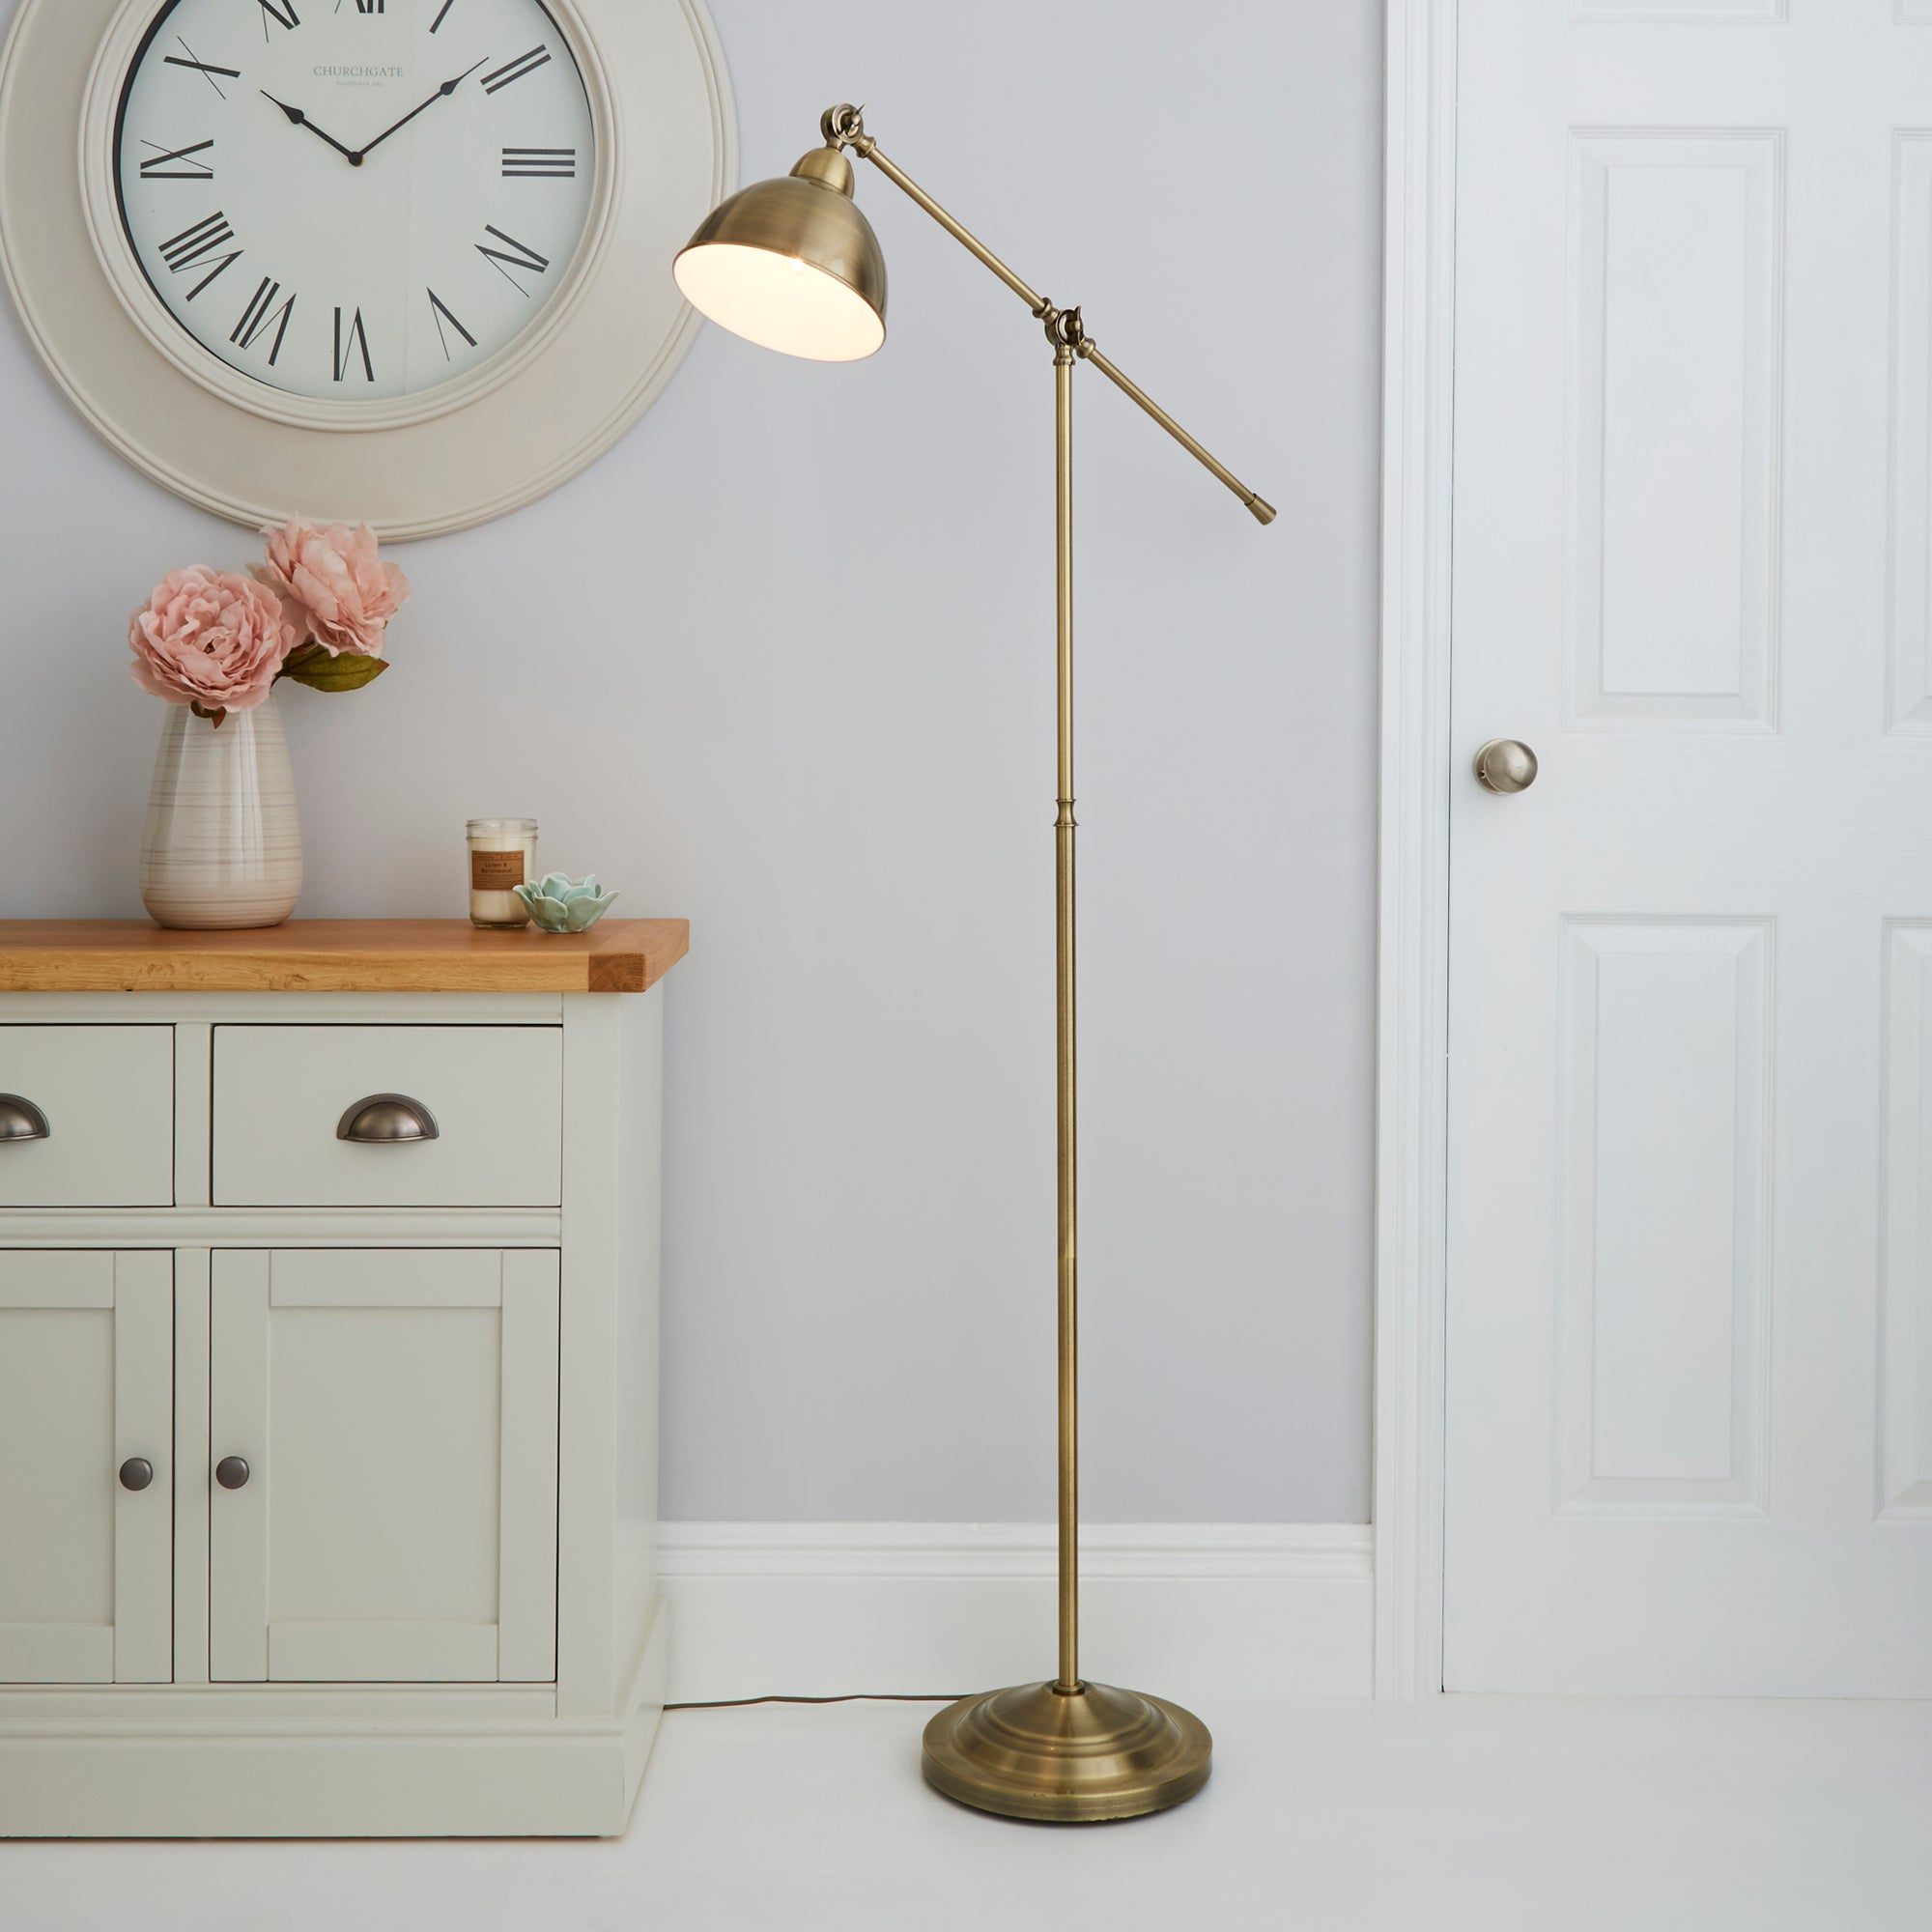 Antique floor lamp shop for cheap lighting and save online for Milan floor lamp antique brass 165cm